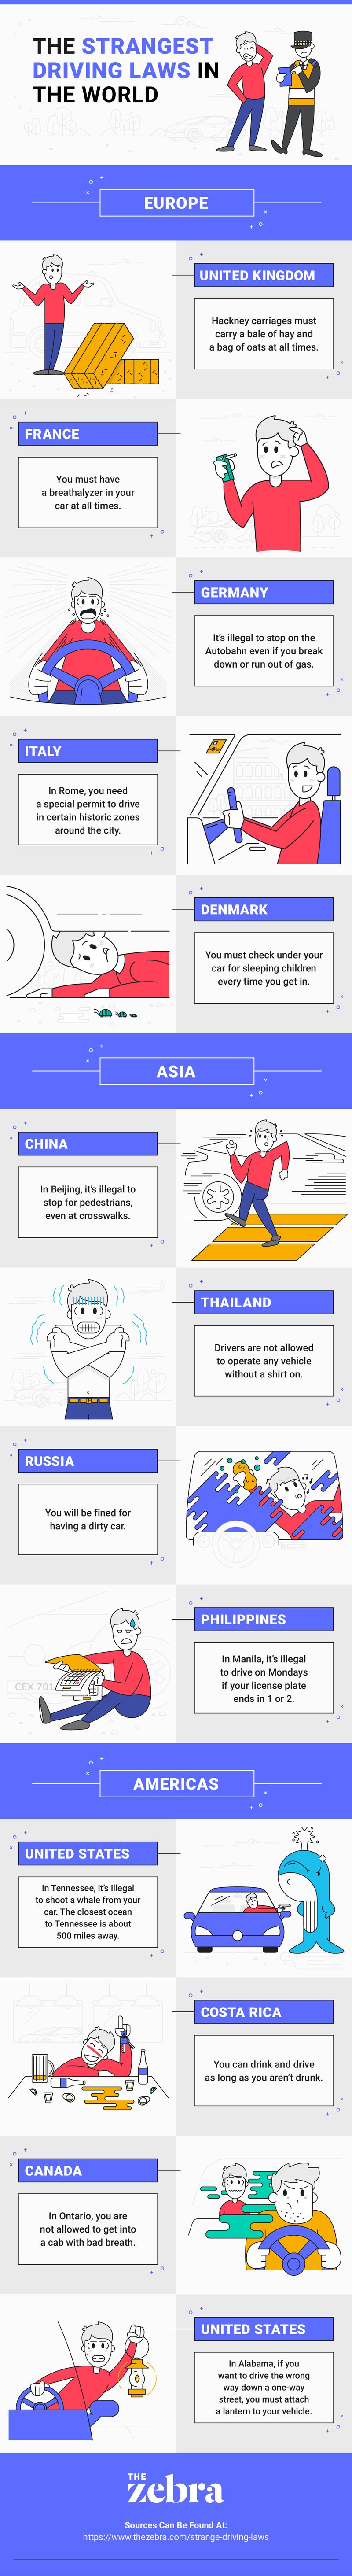 strange driving laws around the world